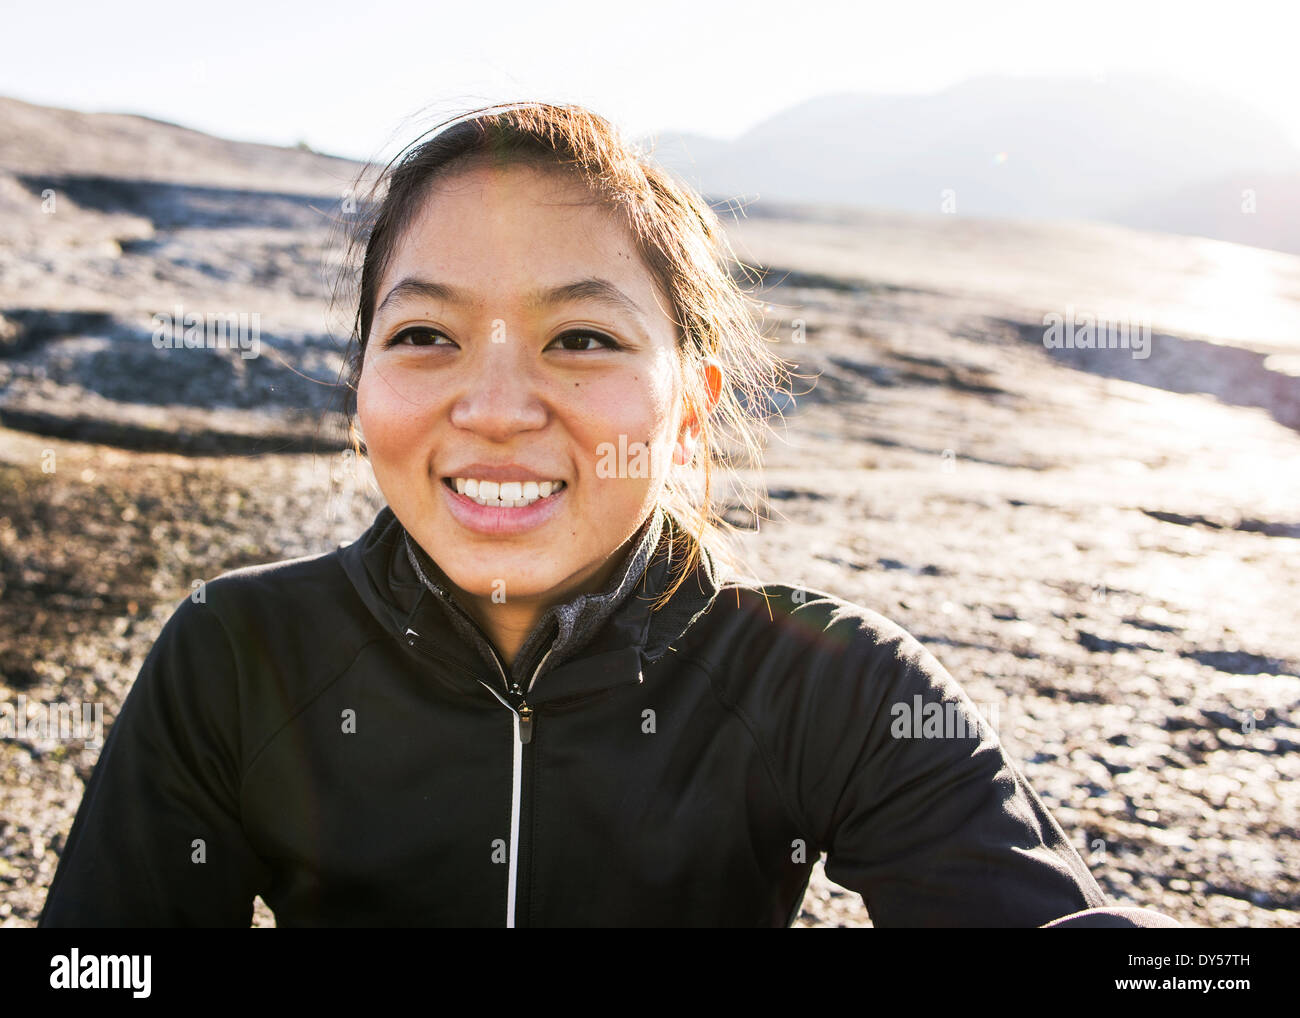 Portrait of young female hiker, Squamish, British Columbia, Canada Photo Stock